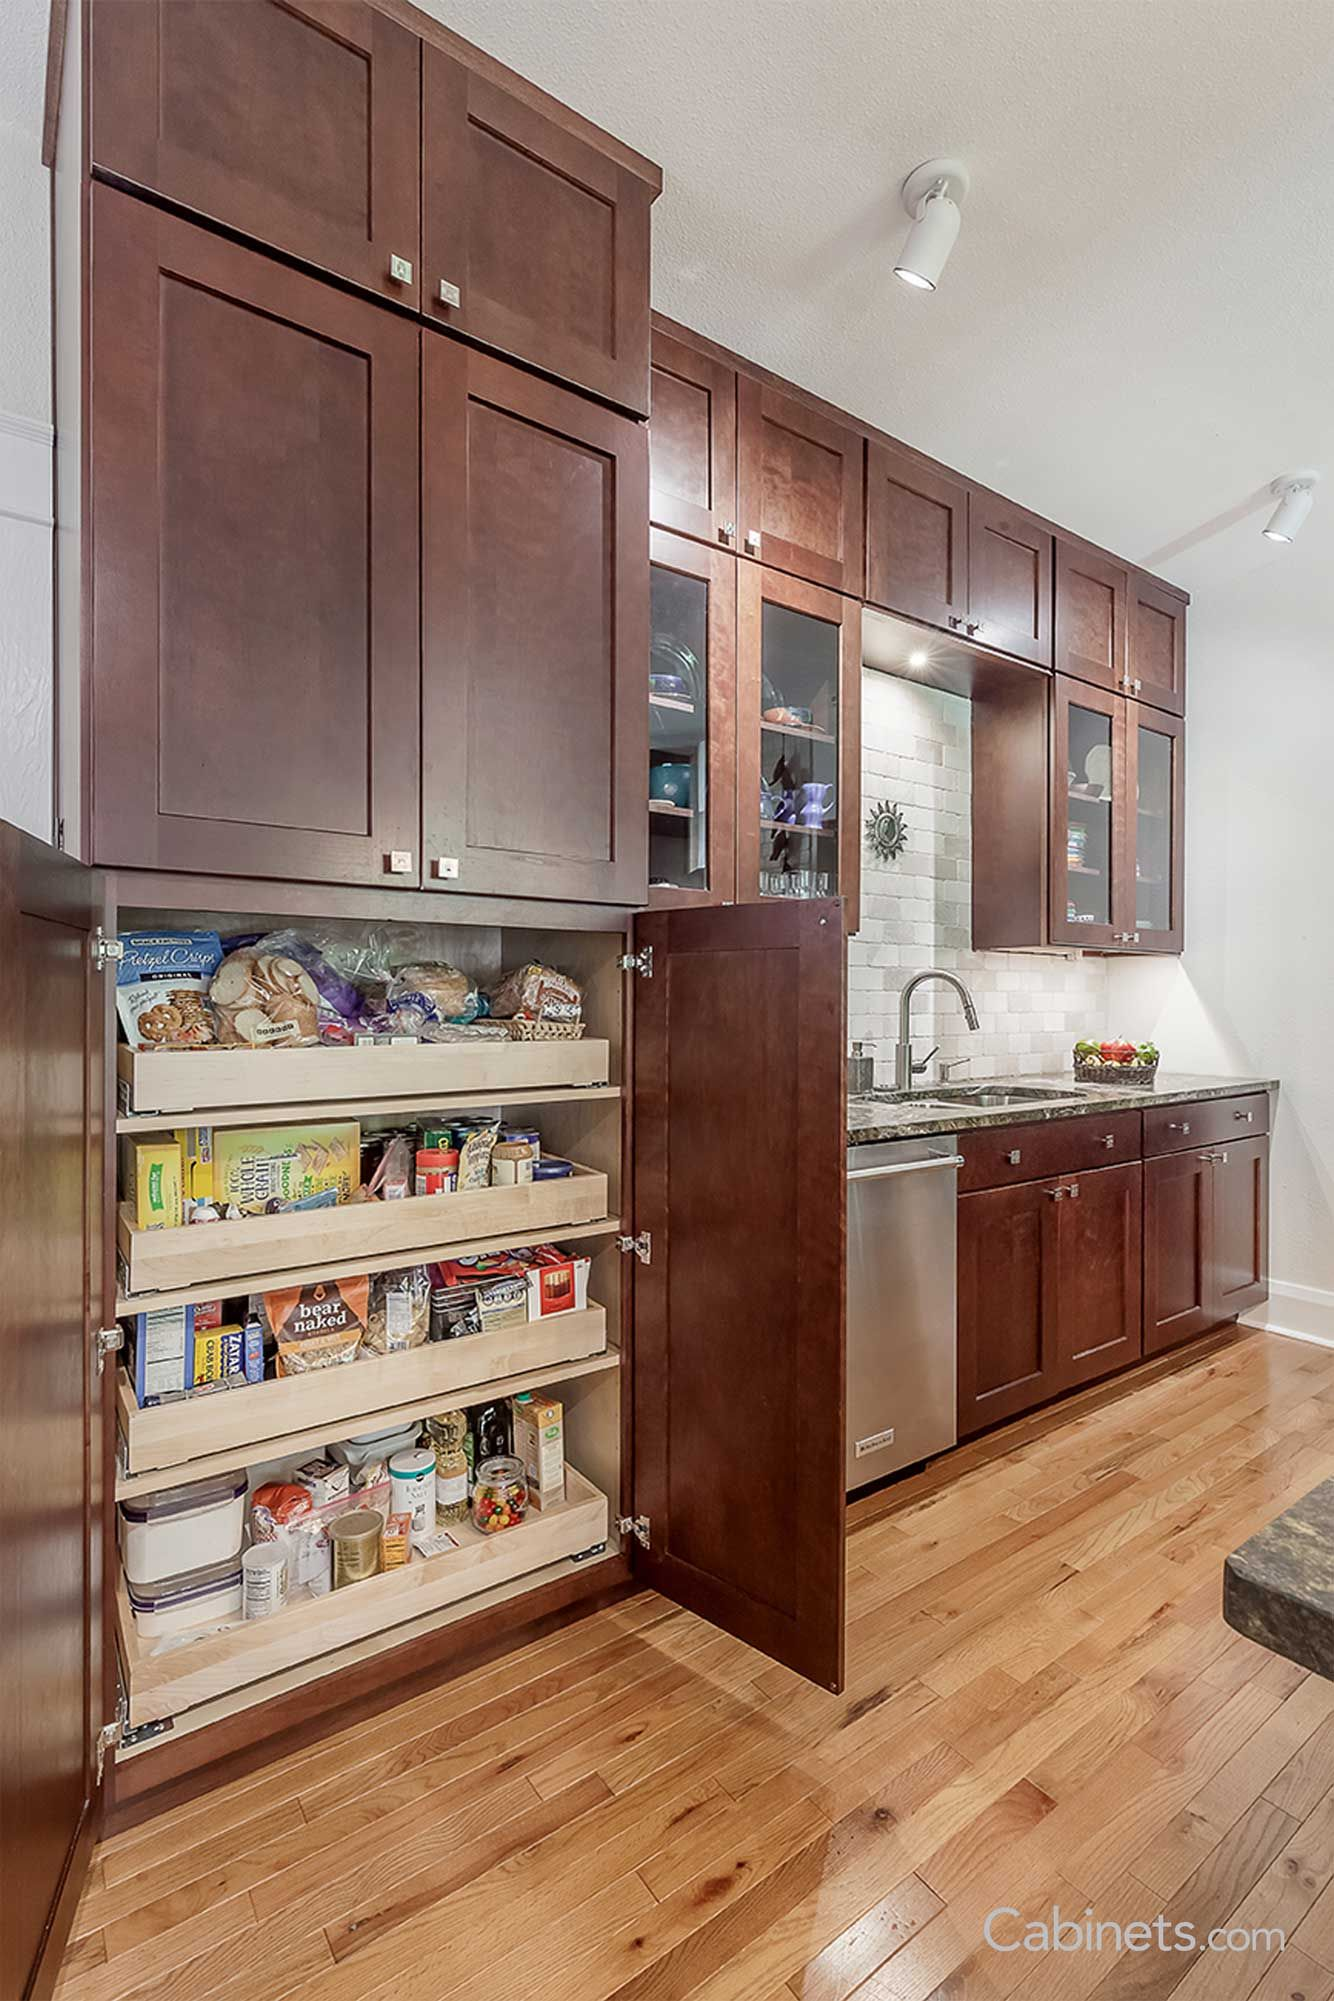 Don T Sacrifice Style For Storage Tall Pantry Cabinets Are A Great Option For All Your Online Kitchen Cabinets Shaker Style Kitchen Cabinets Kitchen Cabinets